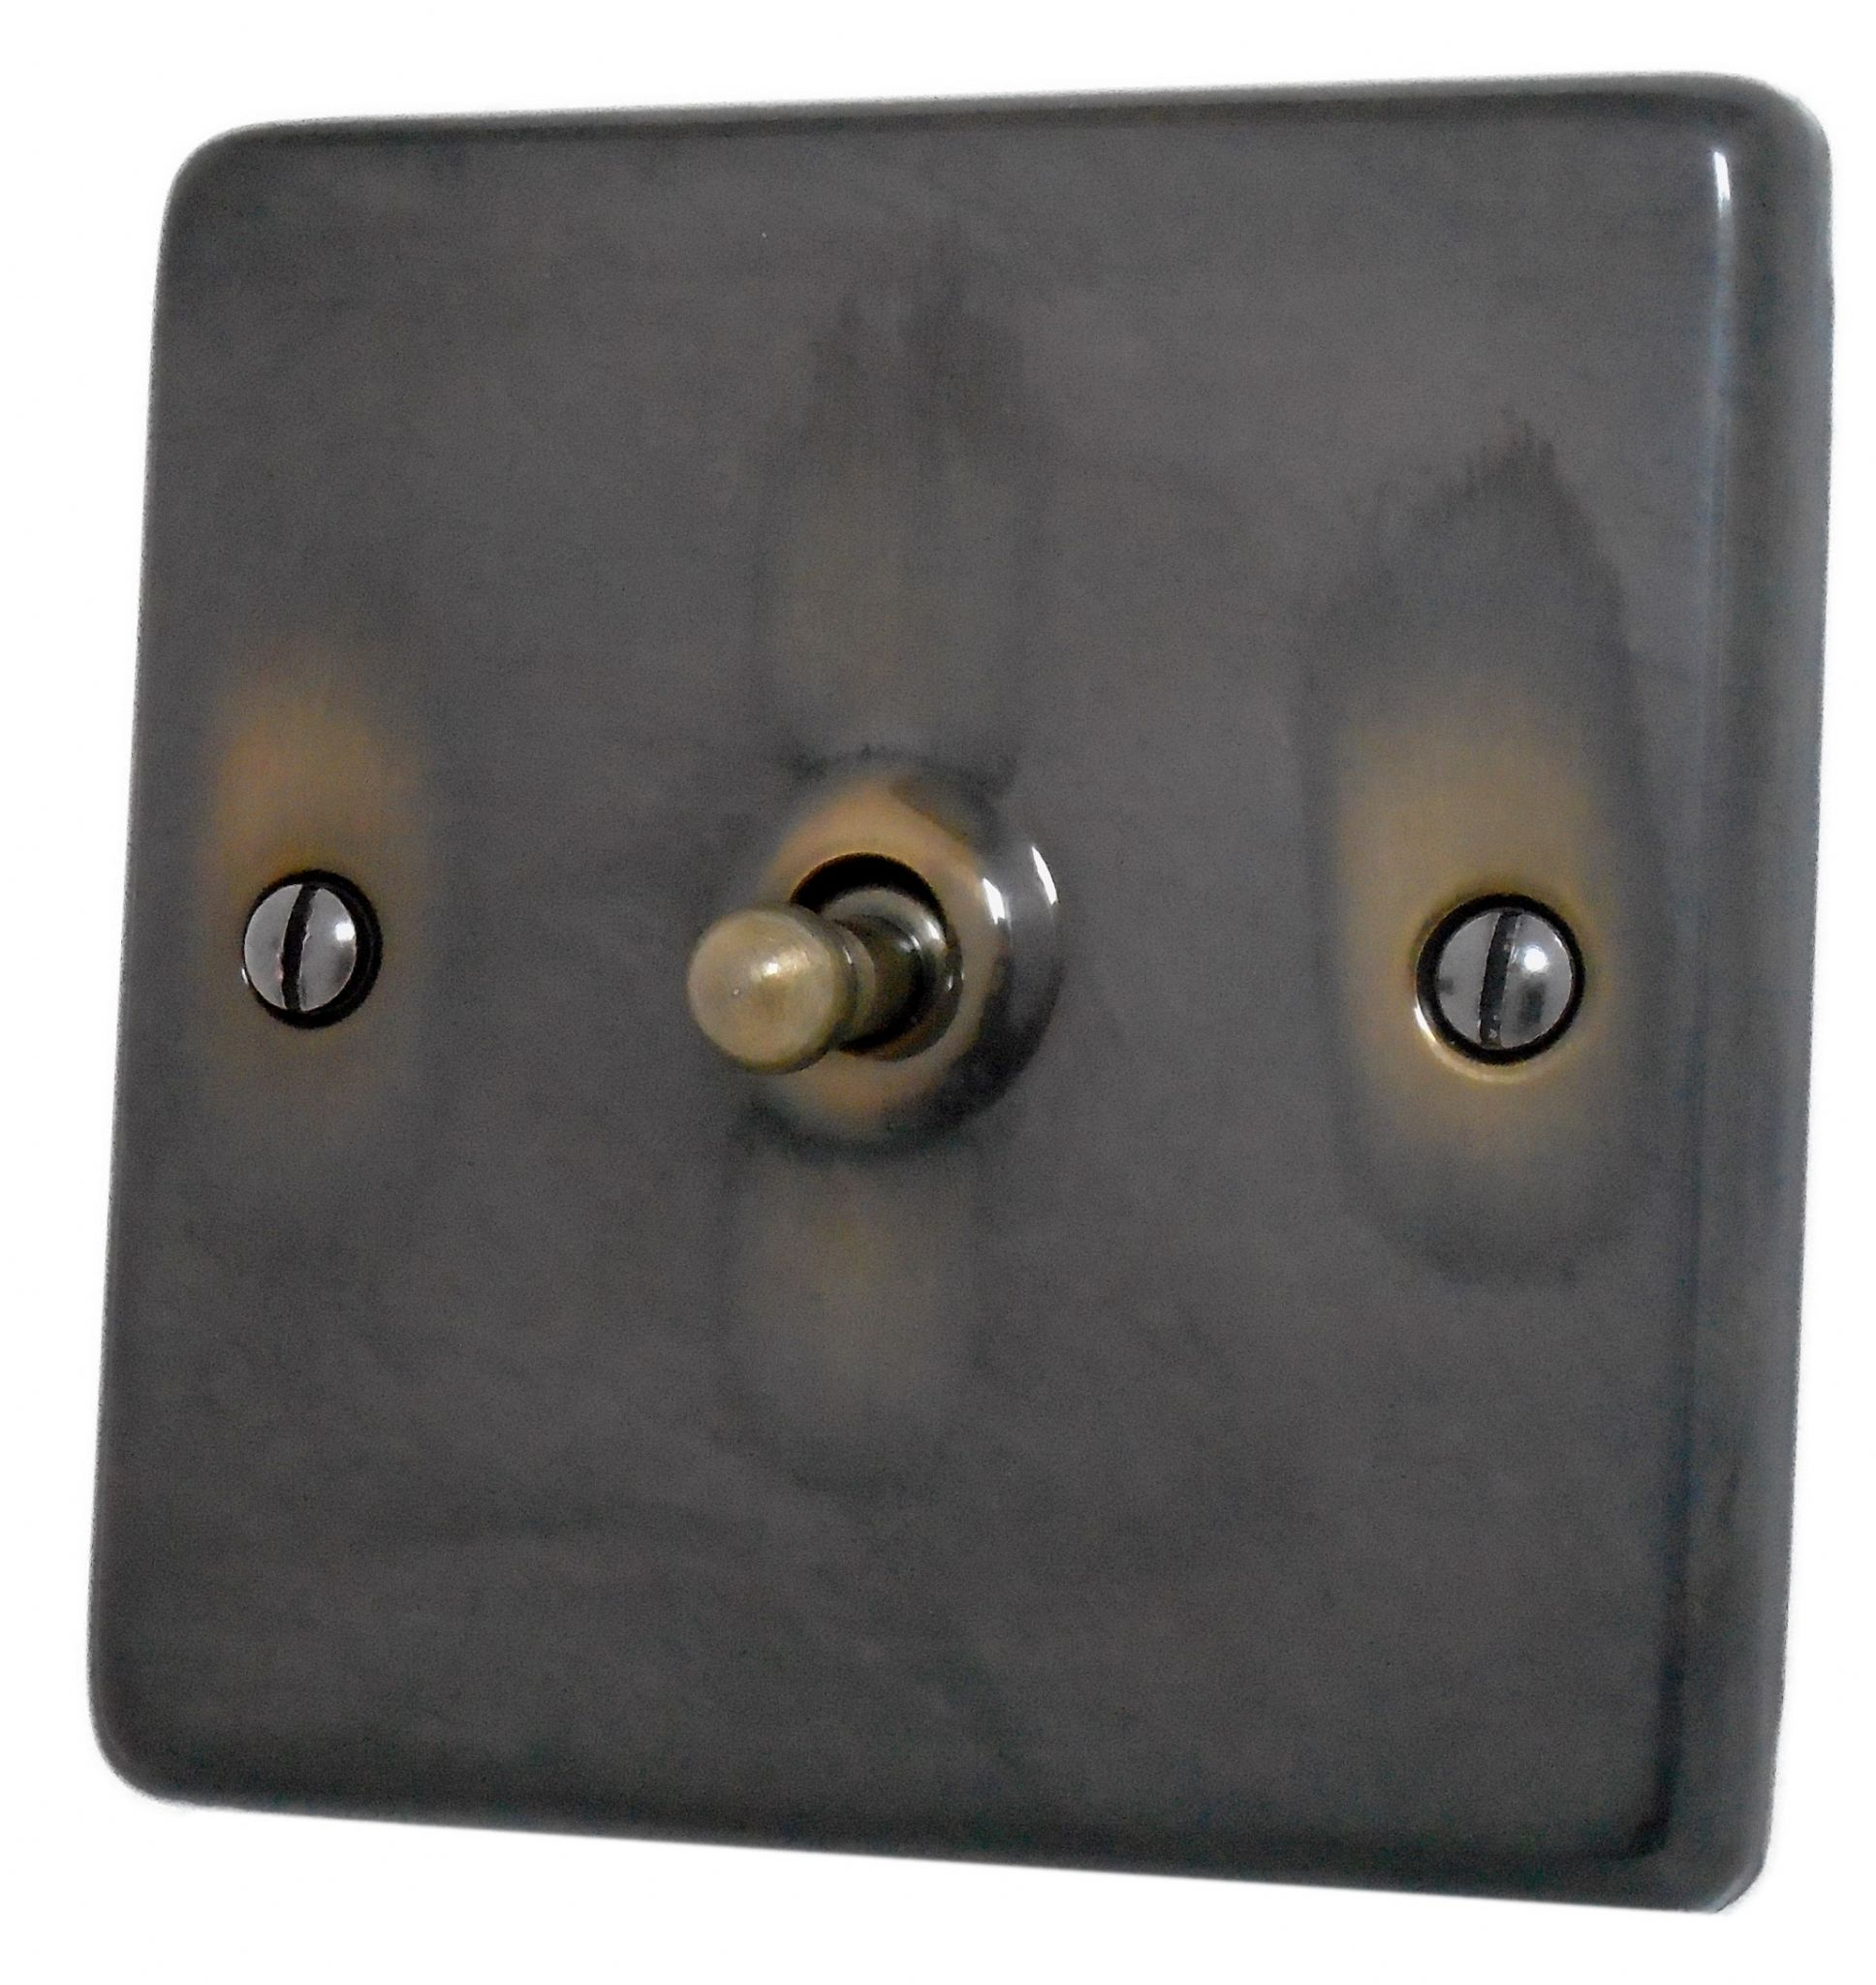 G H Can285 Standard Plate Polished Aged Brass 1 Gang Intermediate Toggle Light Switch